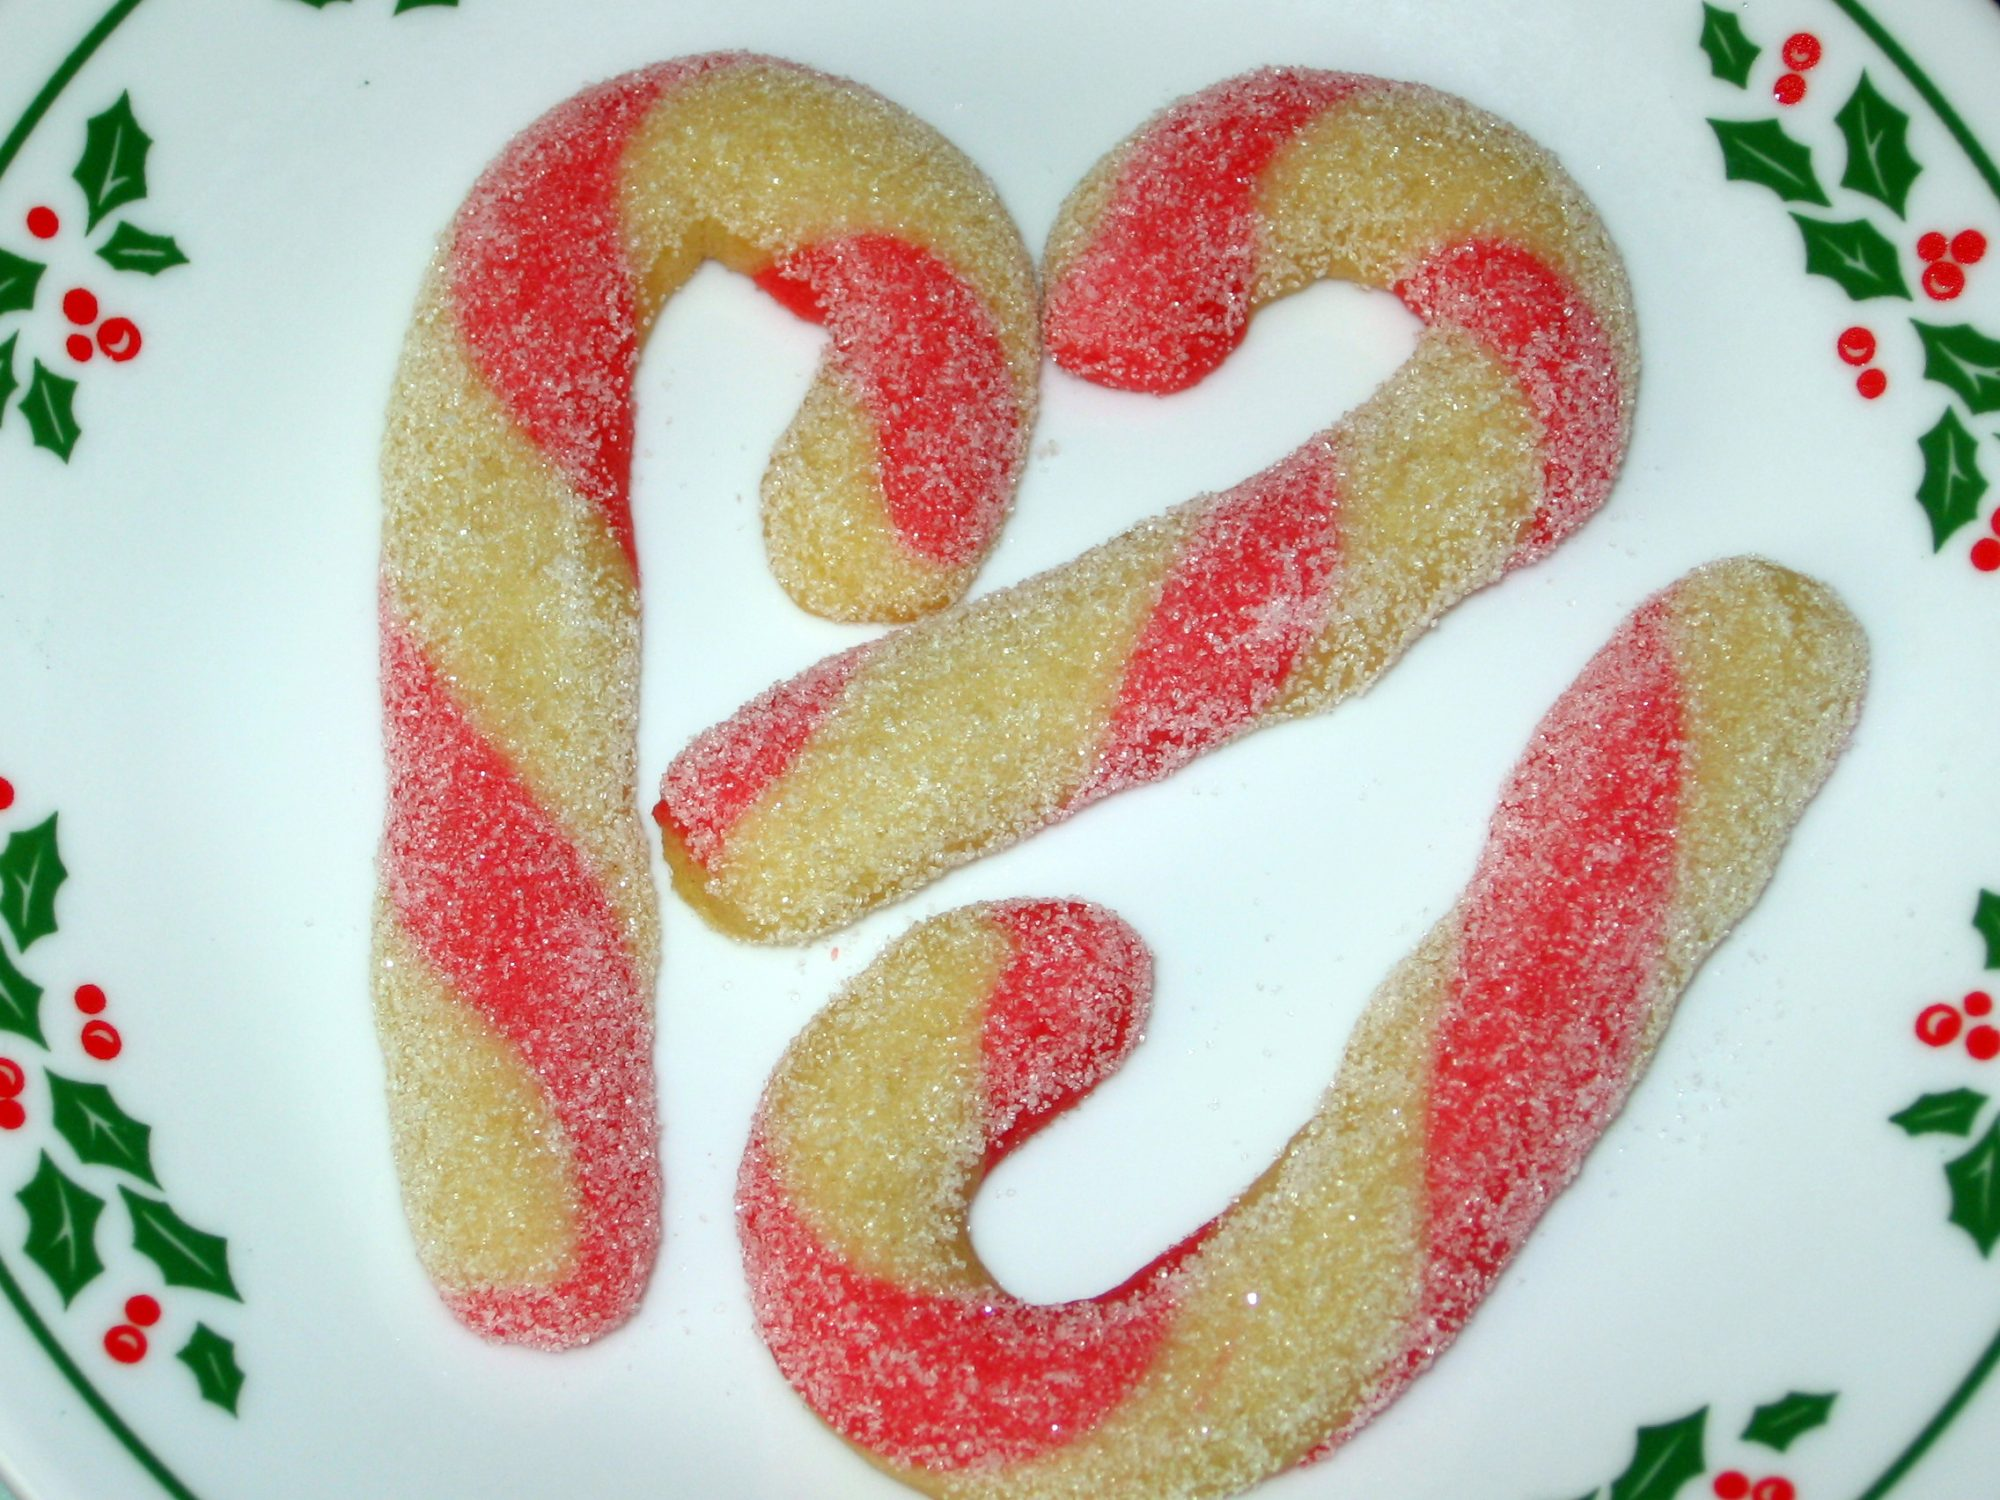 Regular and dyed cookie dough twisted together to emulate a candy cane